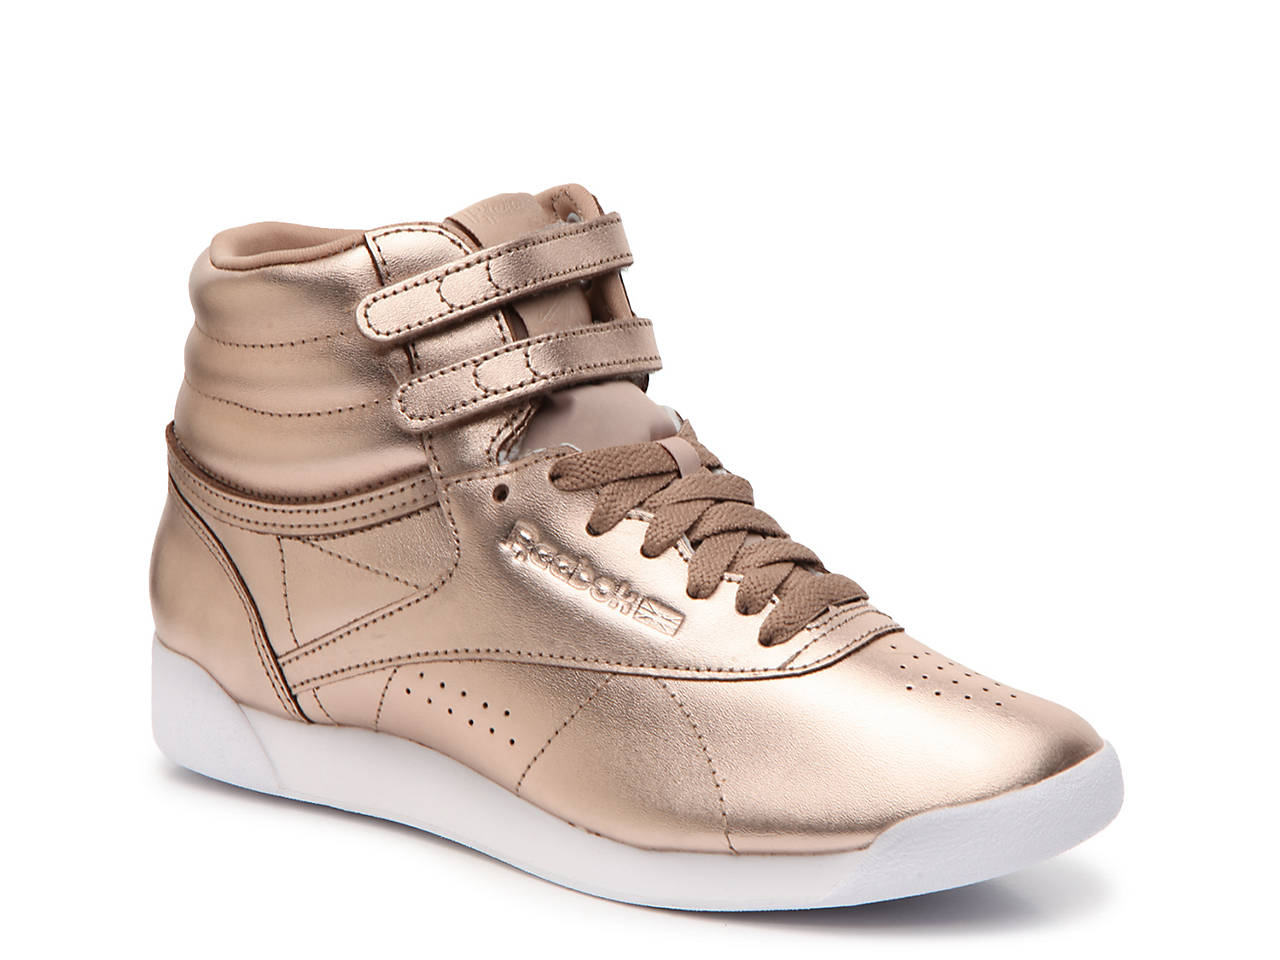 03aca51d61aa6 Reebok Hi Metallic High-Top Sneaker - Women s Women s Shoes